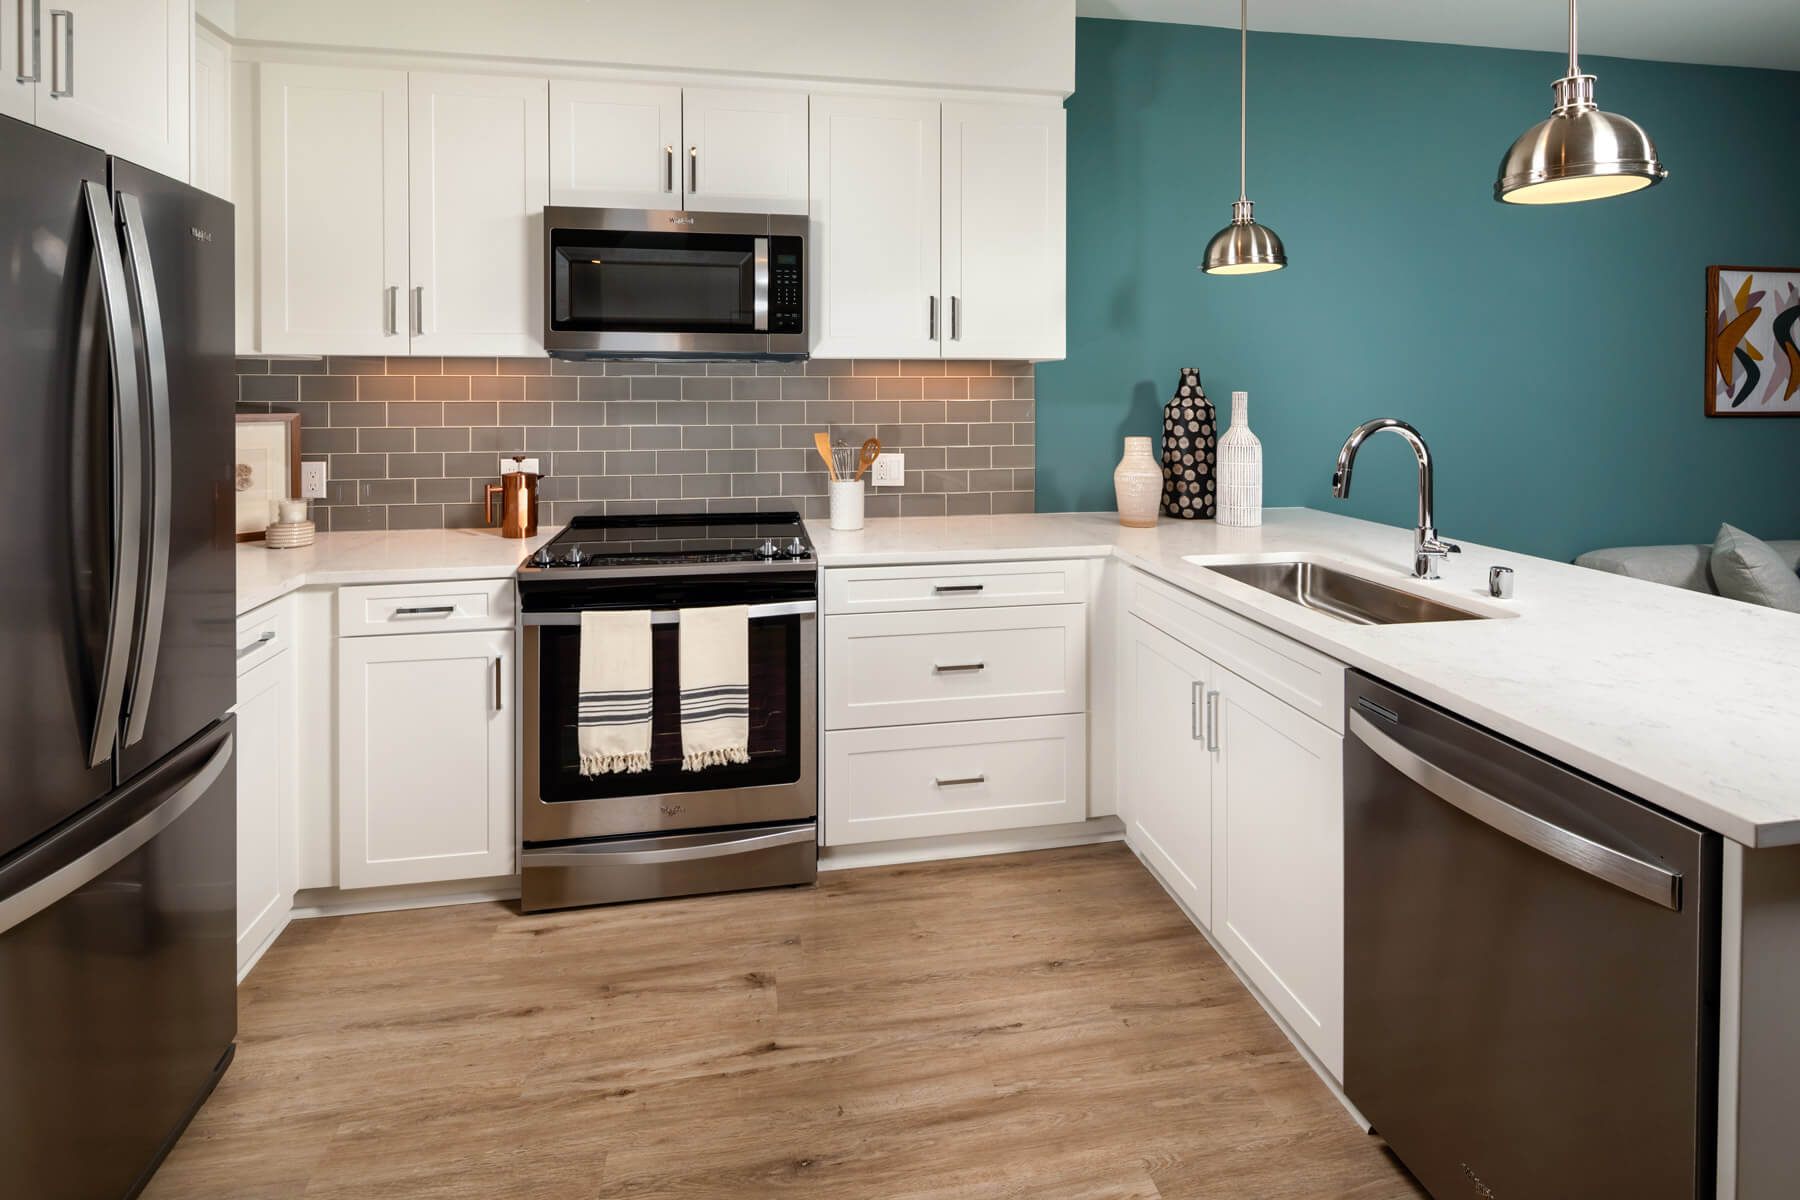 One Bedroom Residence Kitchen